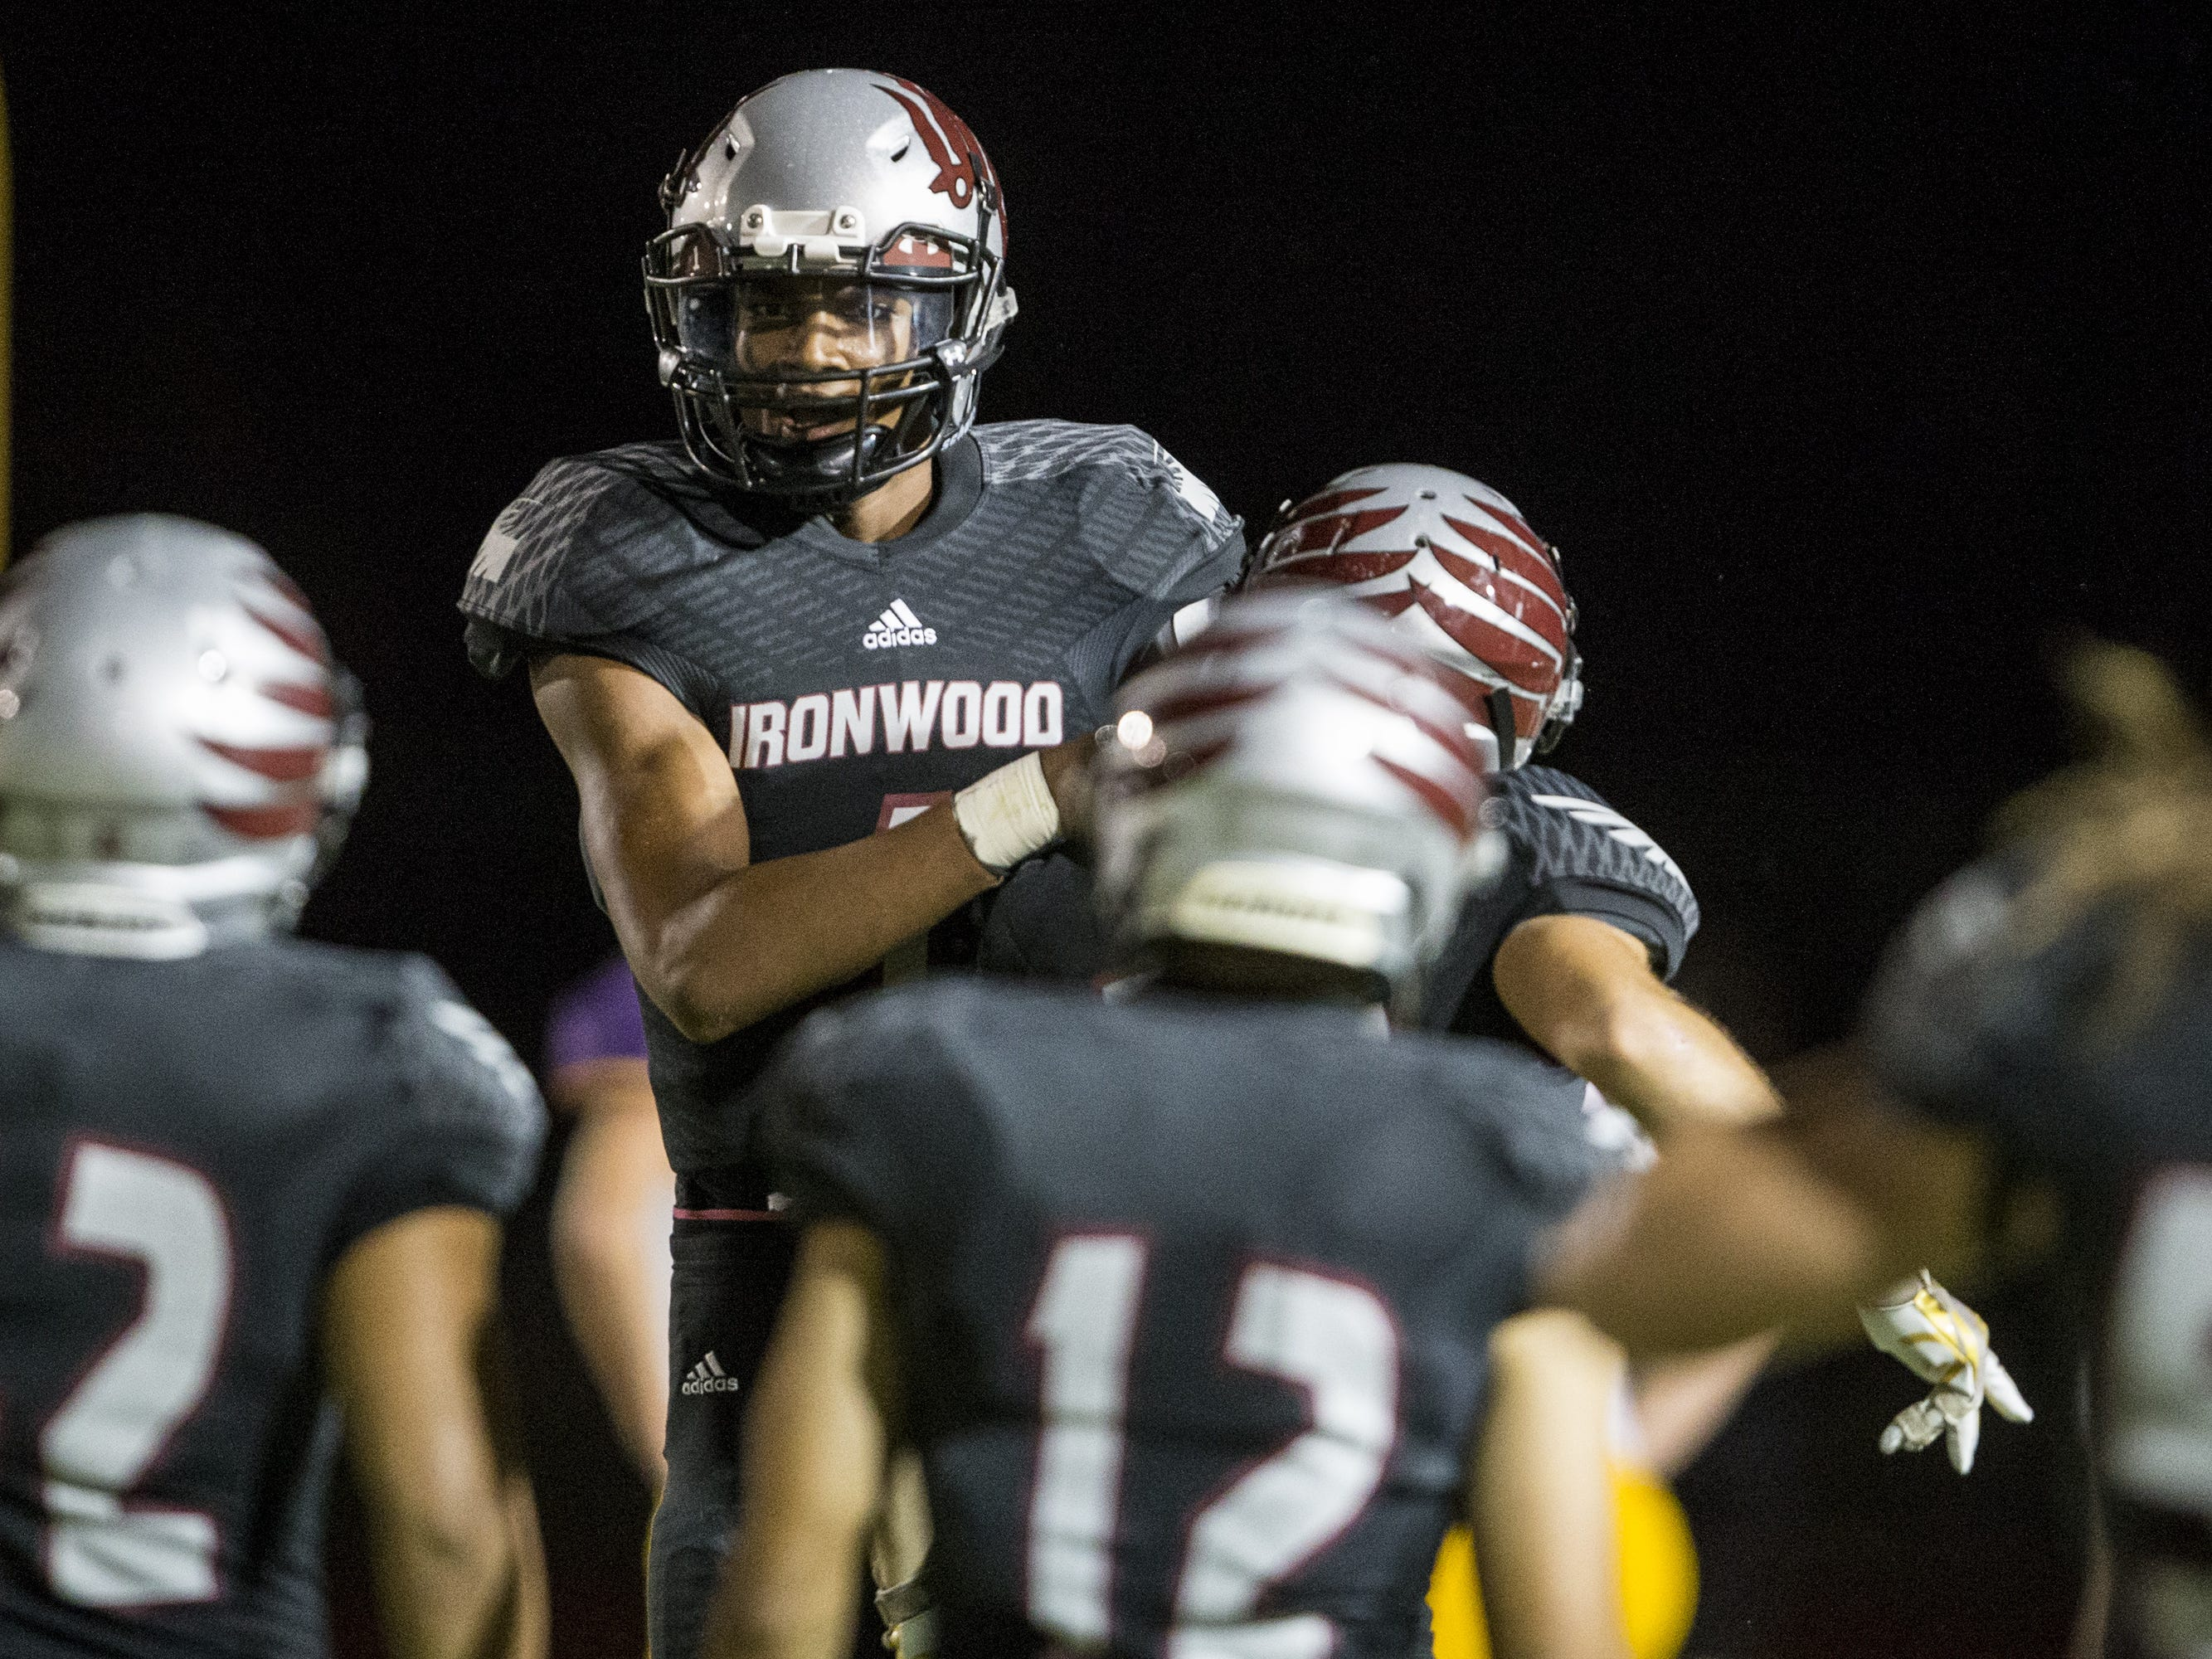 Ironwood's William Haskell celebrates after scoring a touchdown against Sunrise Mountain in the 1st quarter on Friday, Sept. 28, 2018, at Ironwood High School in Glendale, Ariz.  #azhsfb